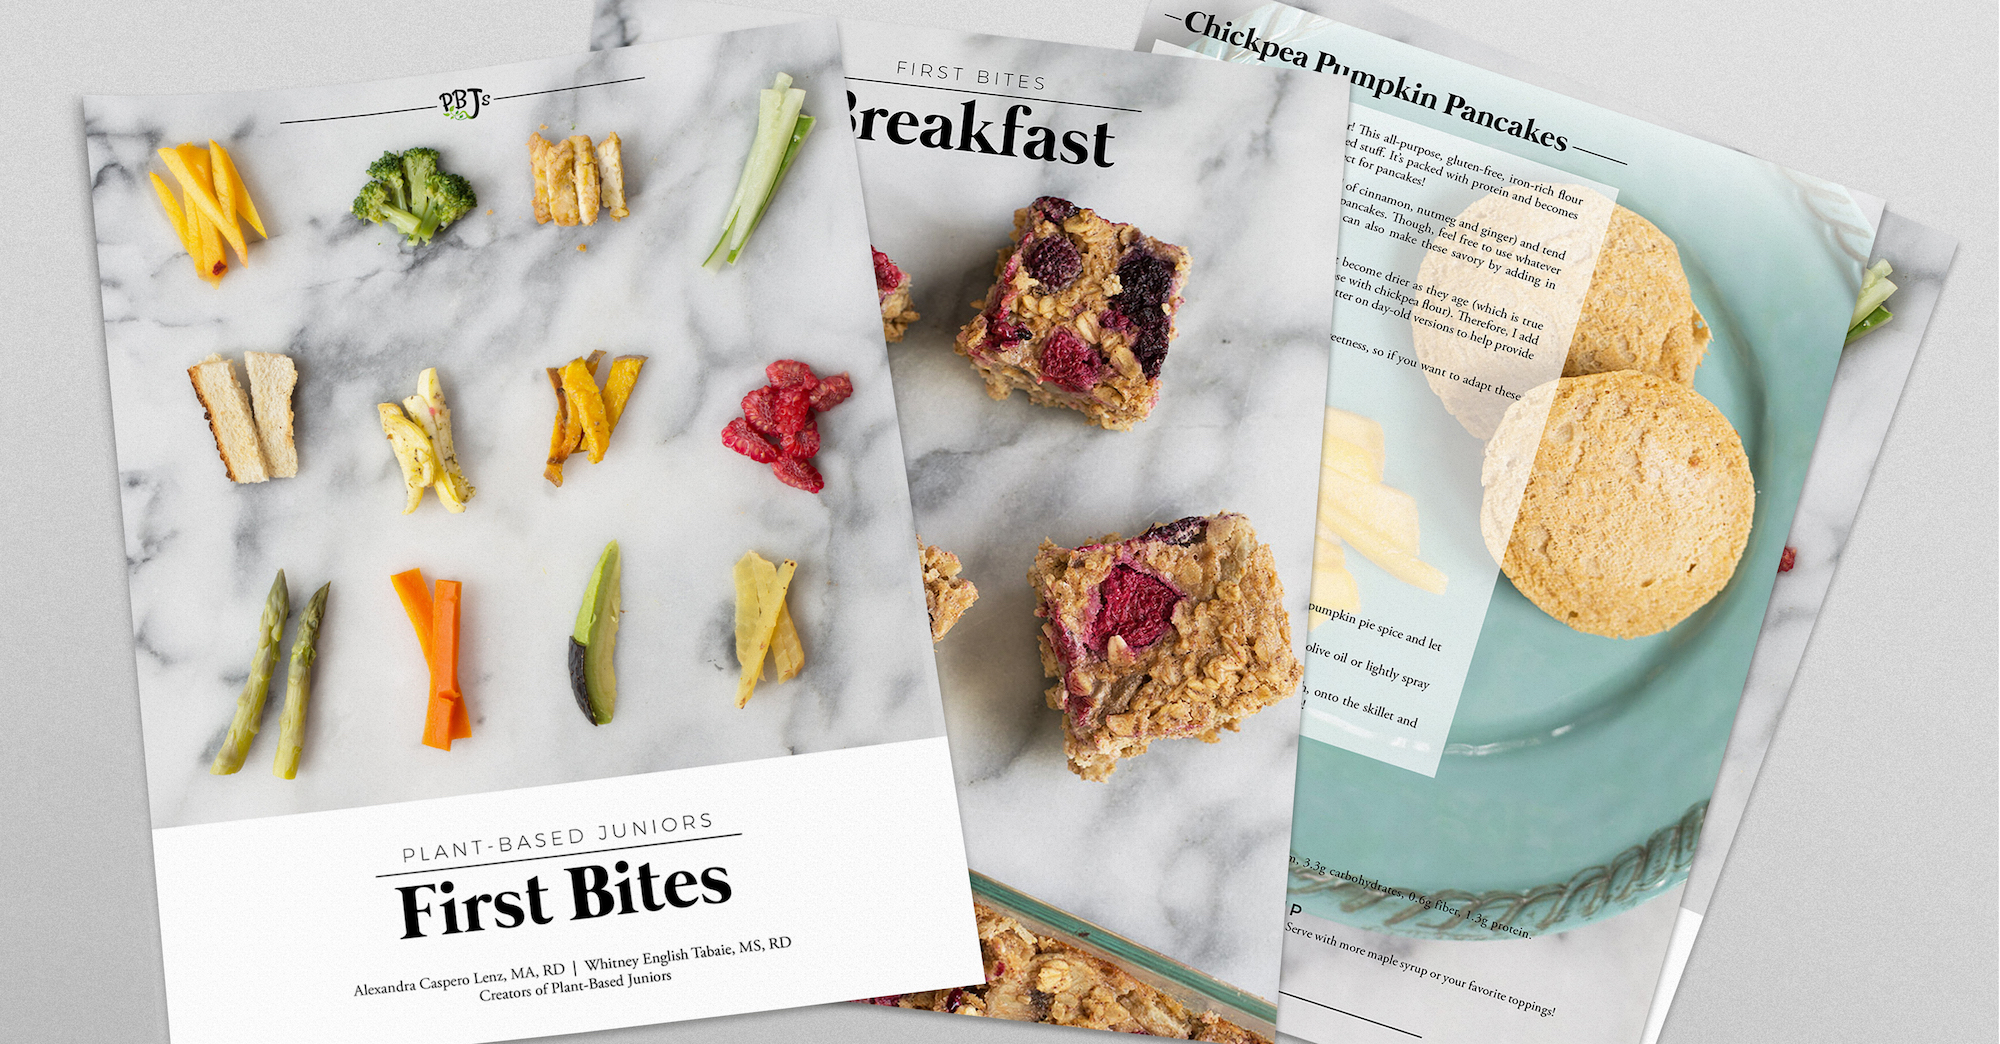 plant-based juniors first bites contents